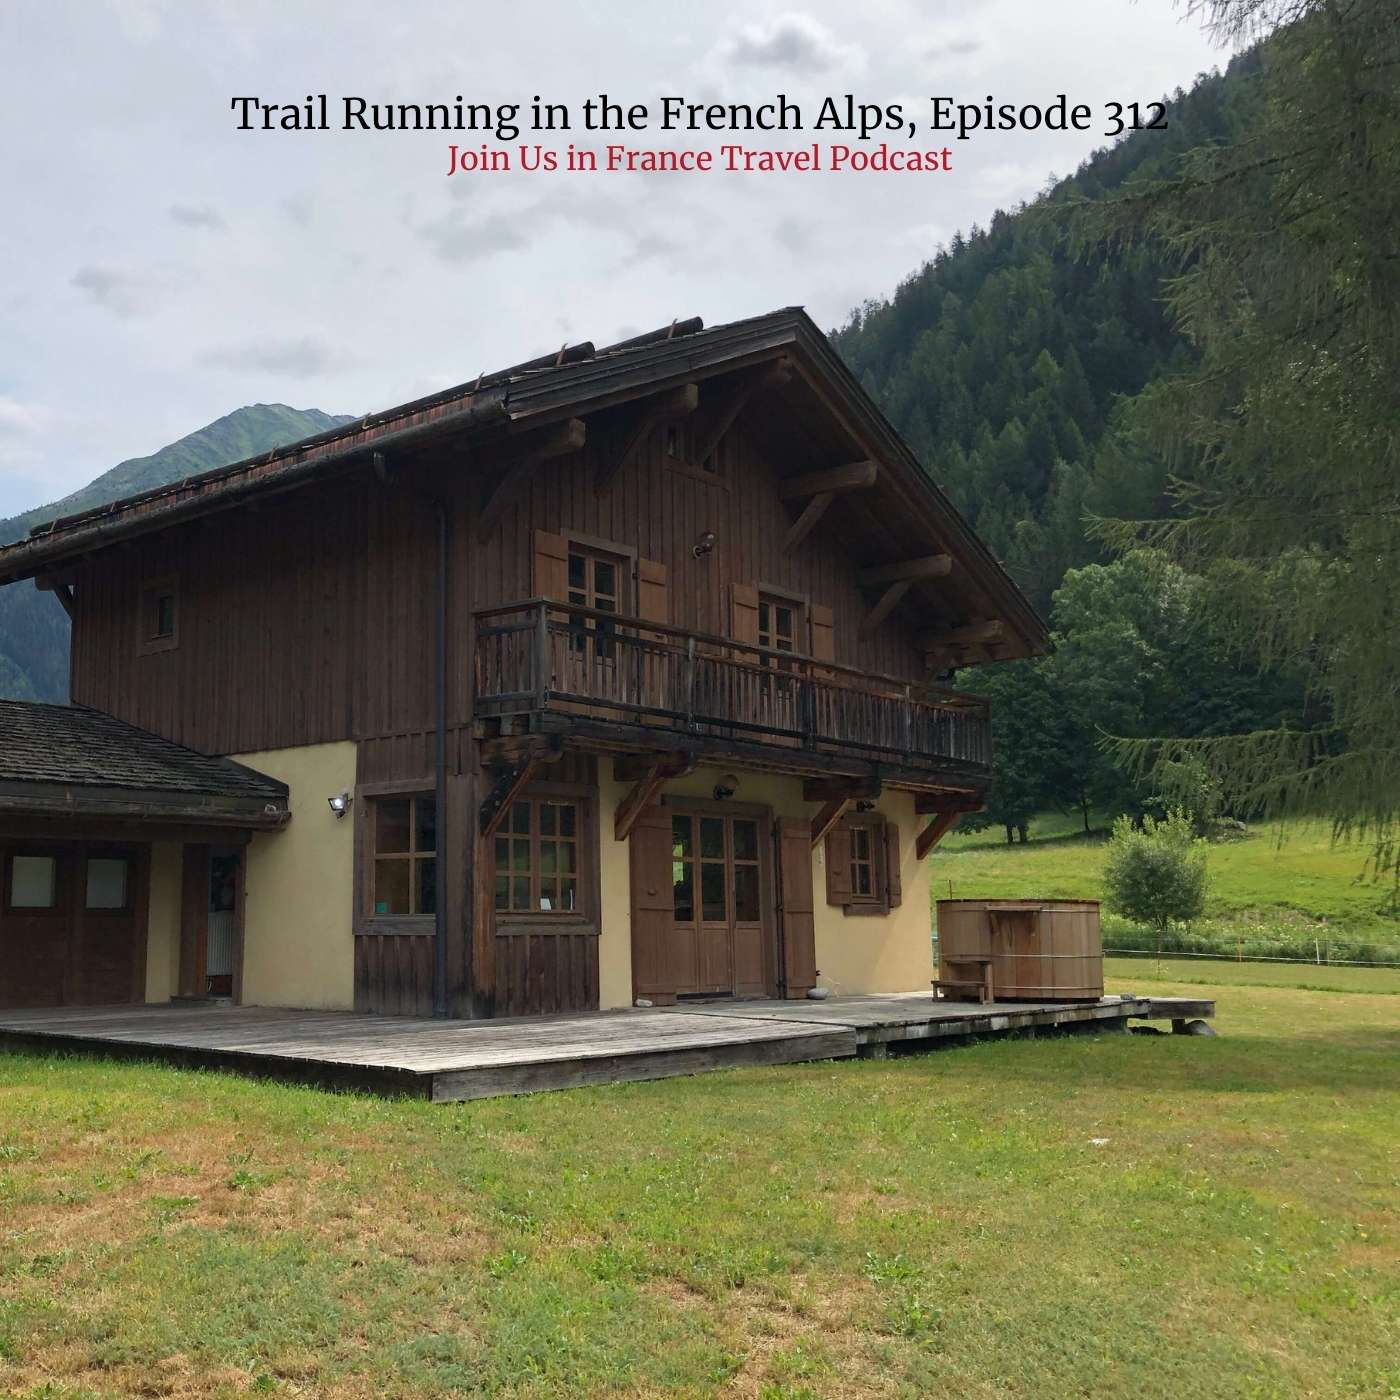 Running a Trail Race in the Alps, Episode 312